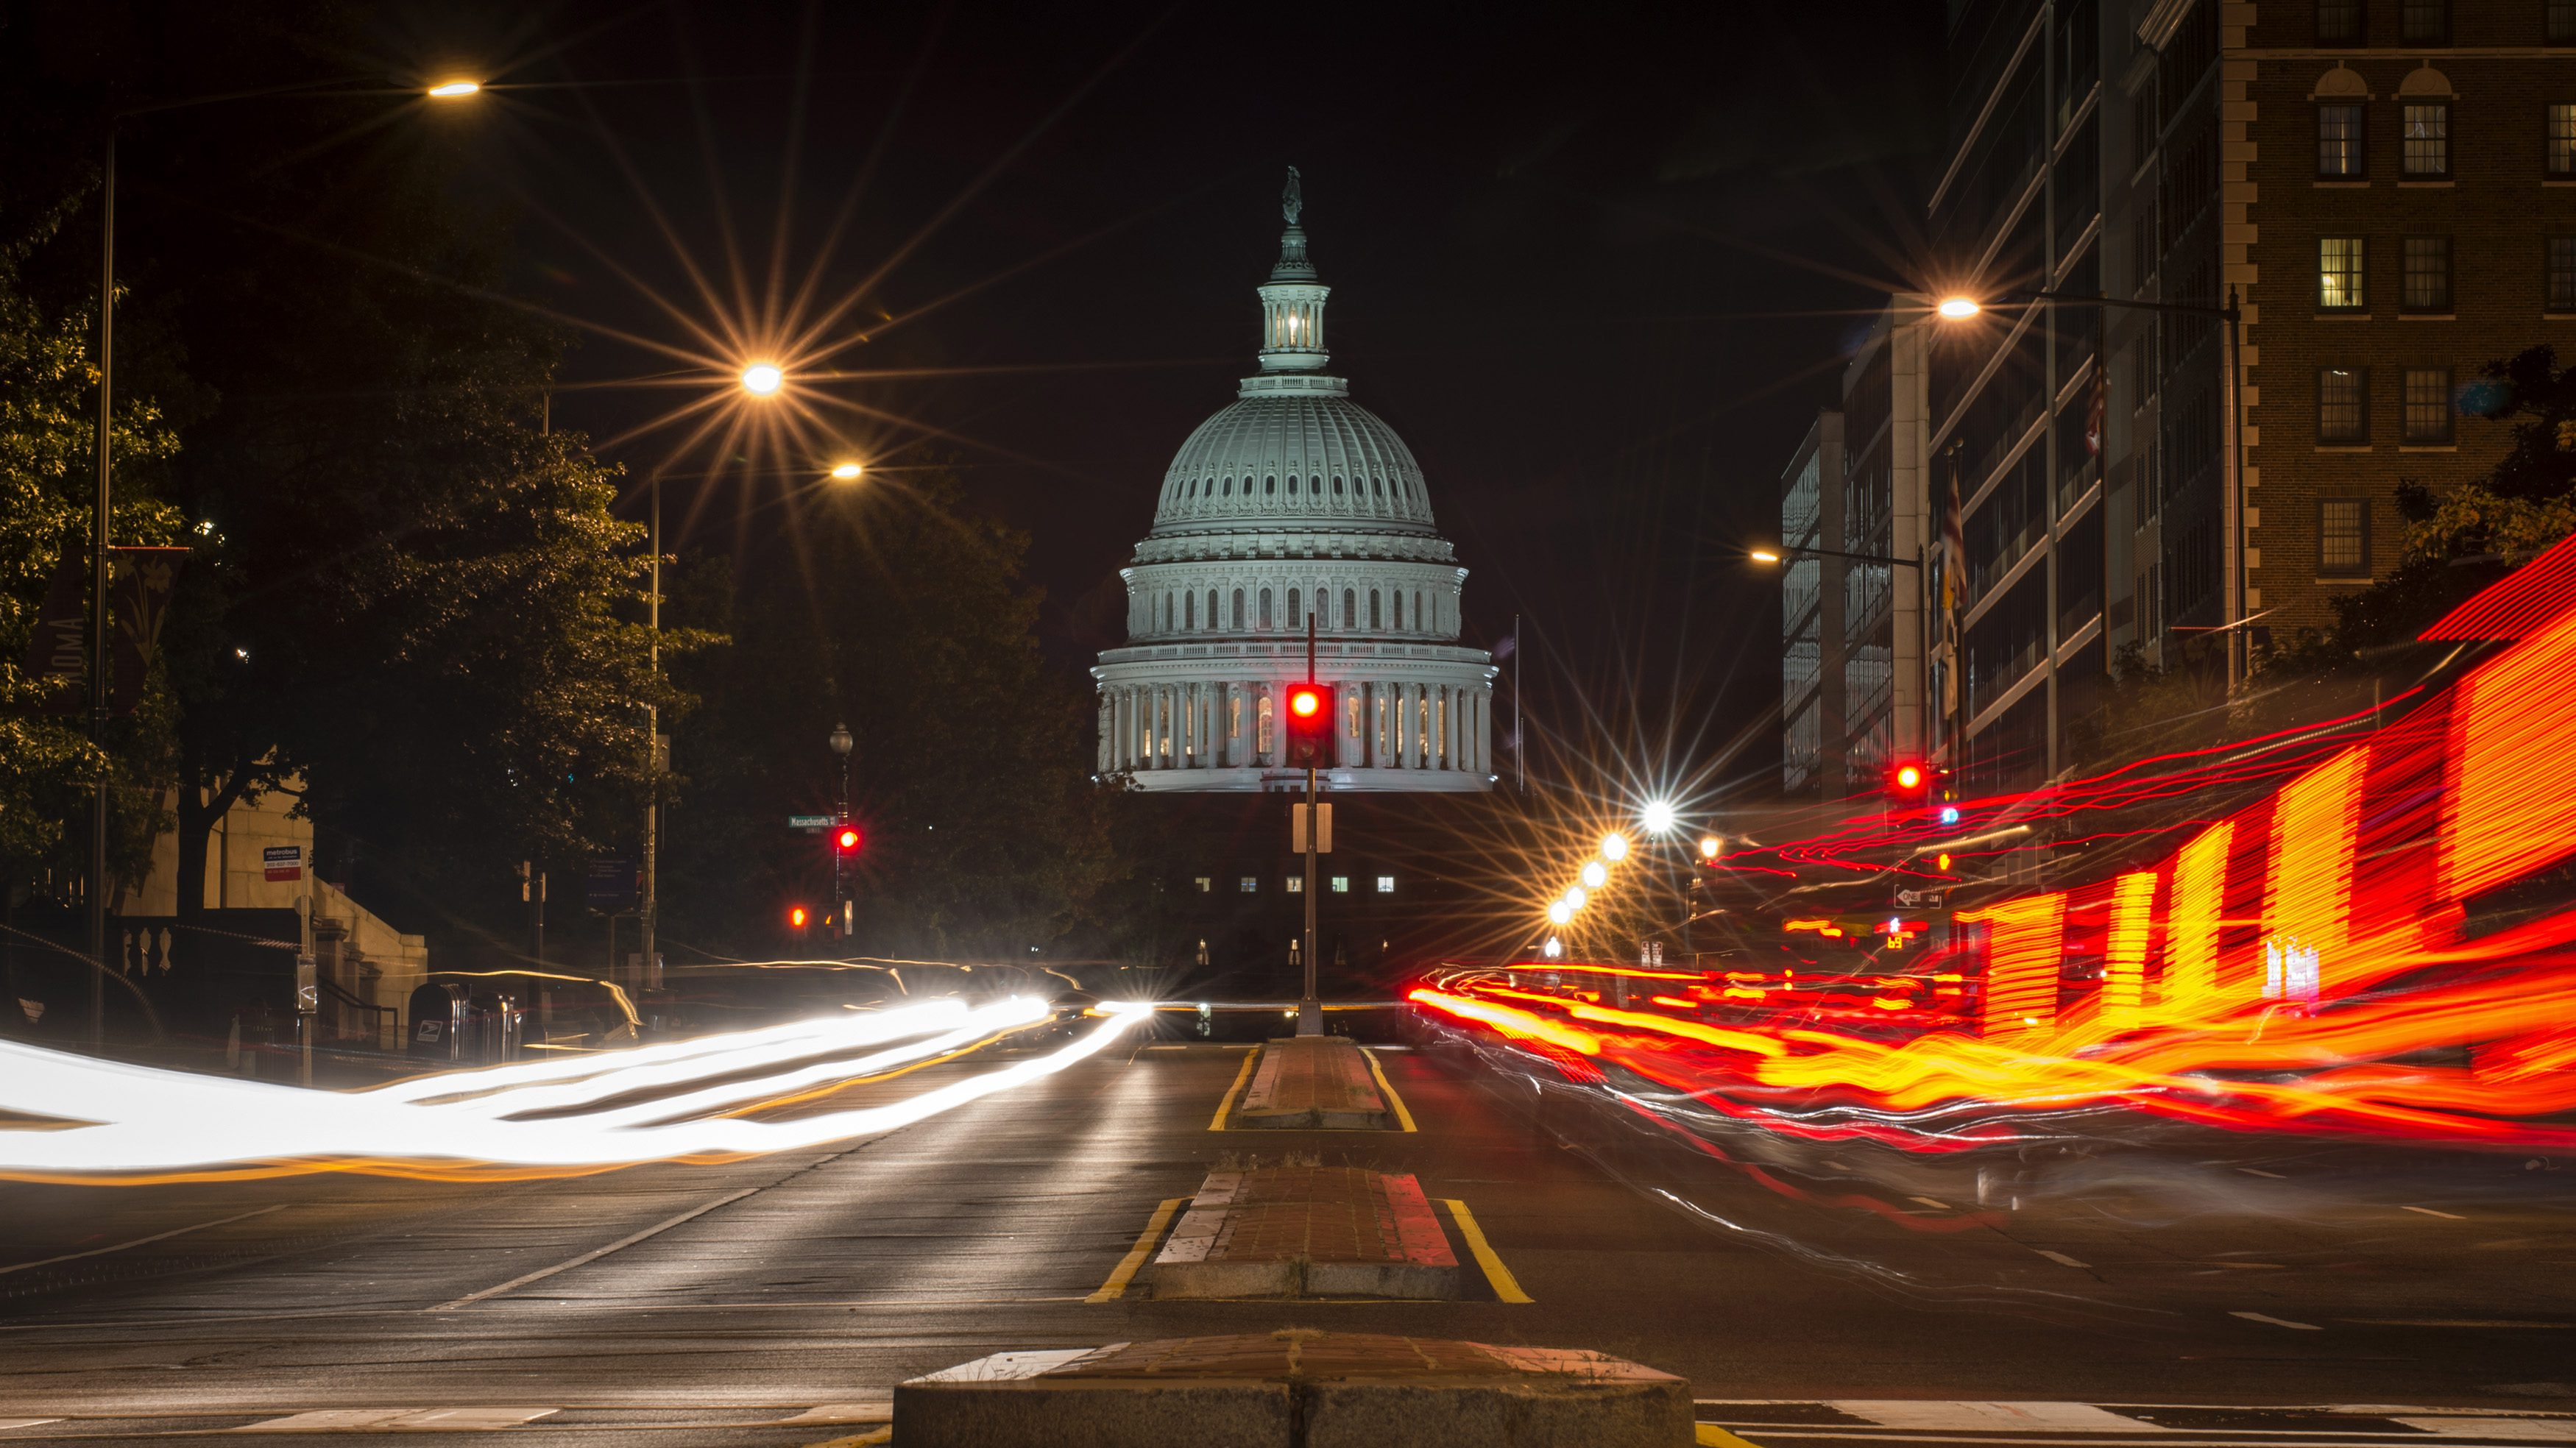 A red traffic light stands in front of the U.S. Capitol building in Washington September 30, 2013, approximately one hour before the U.S. federal government partially shut down after lawmakers failed to compromise on an emergency spending bill.